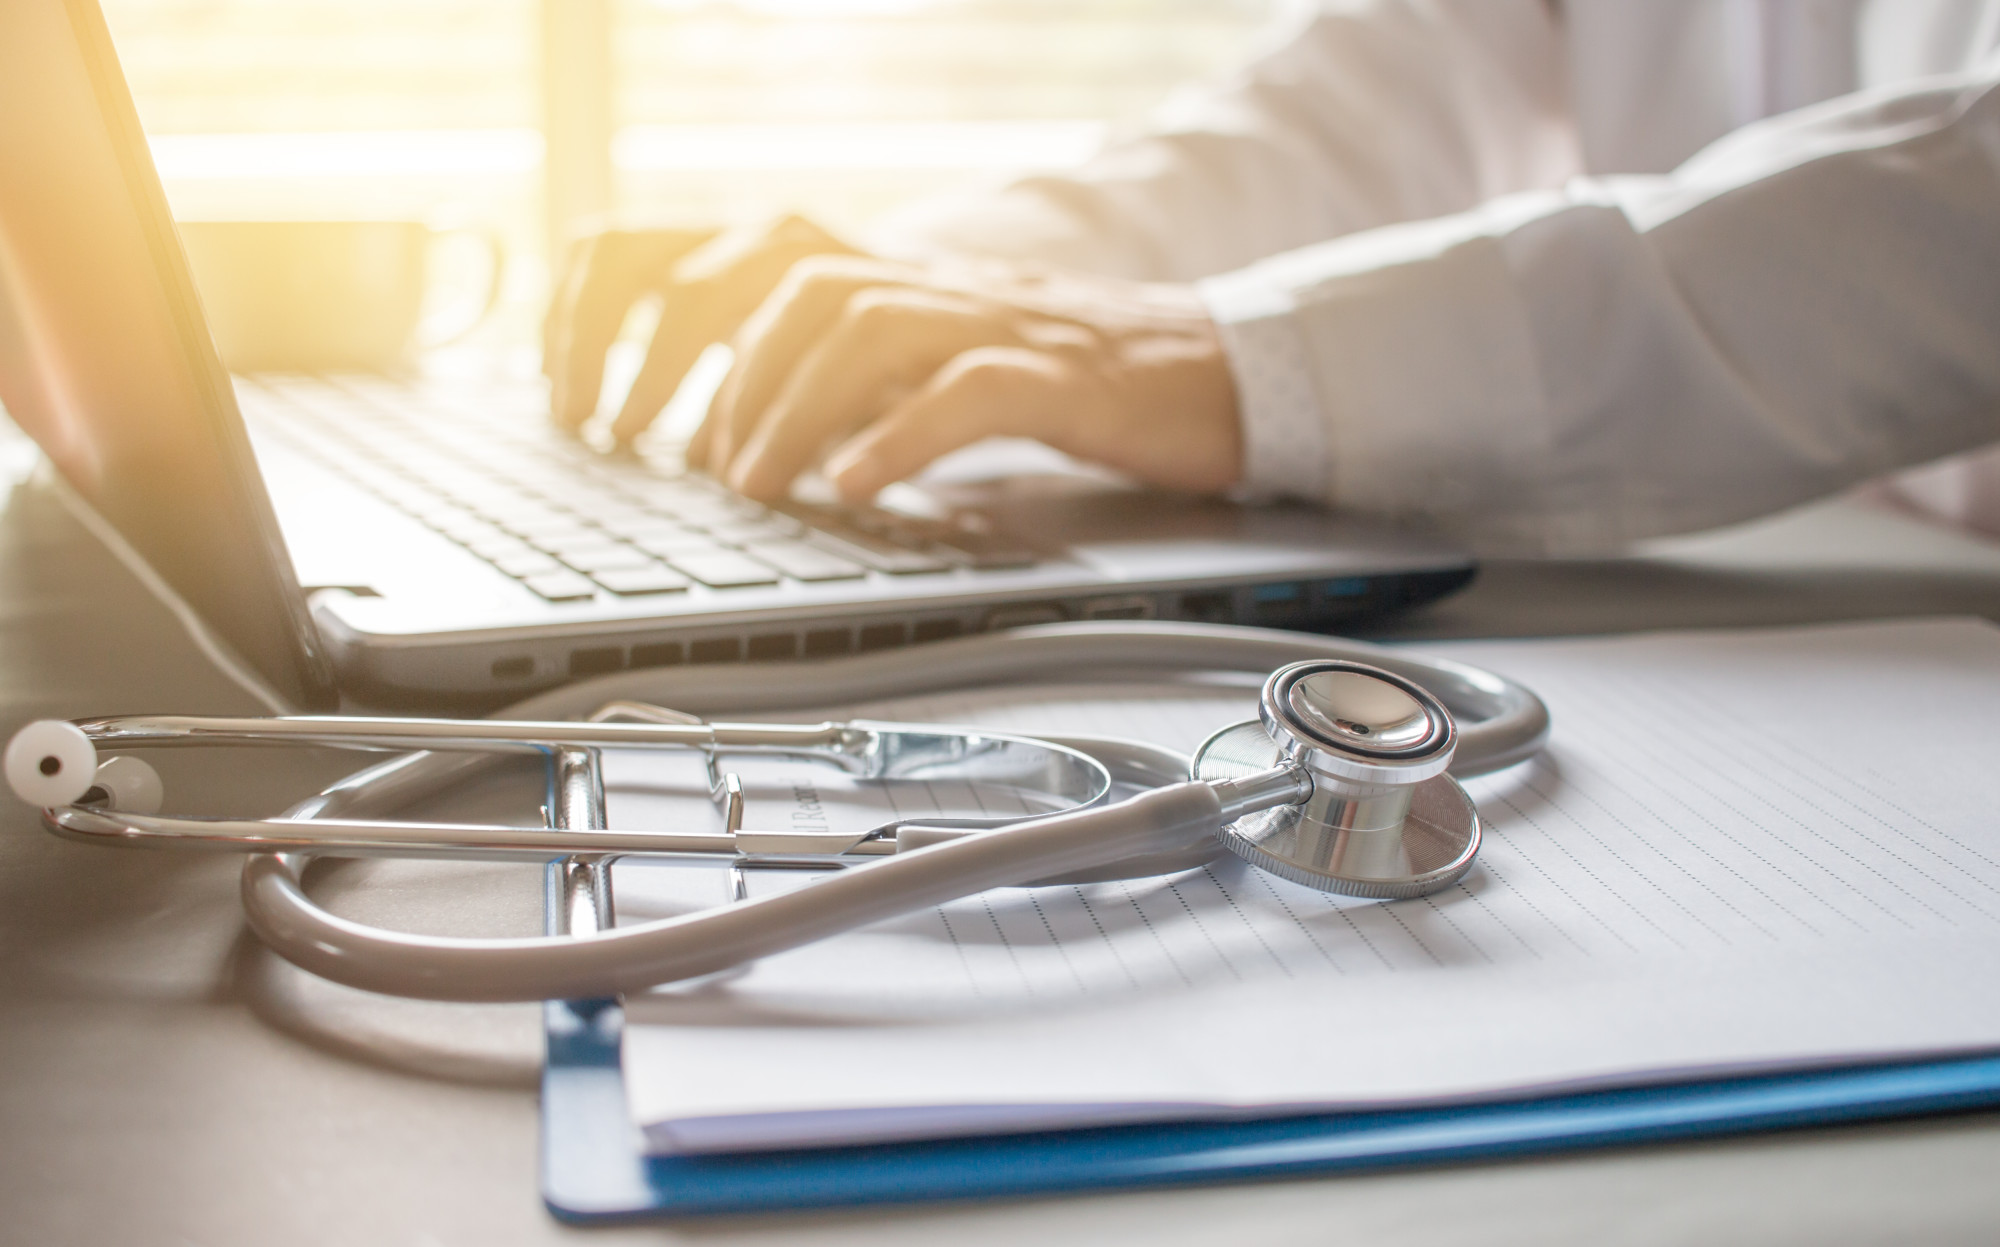 doctor typing on a laptop with a medical chart and stethoscope on the table